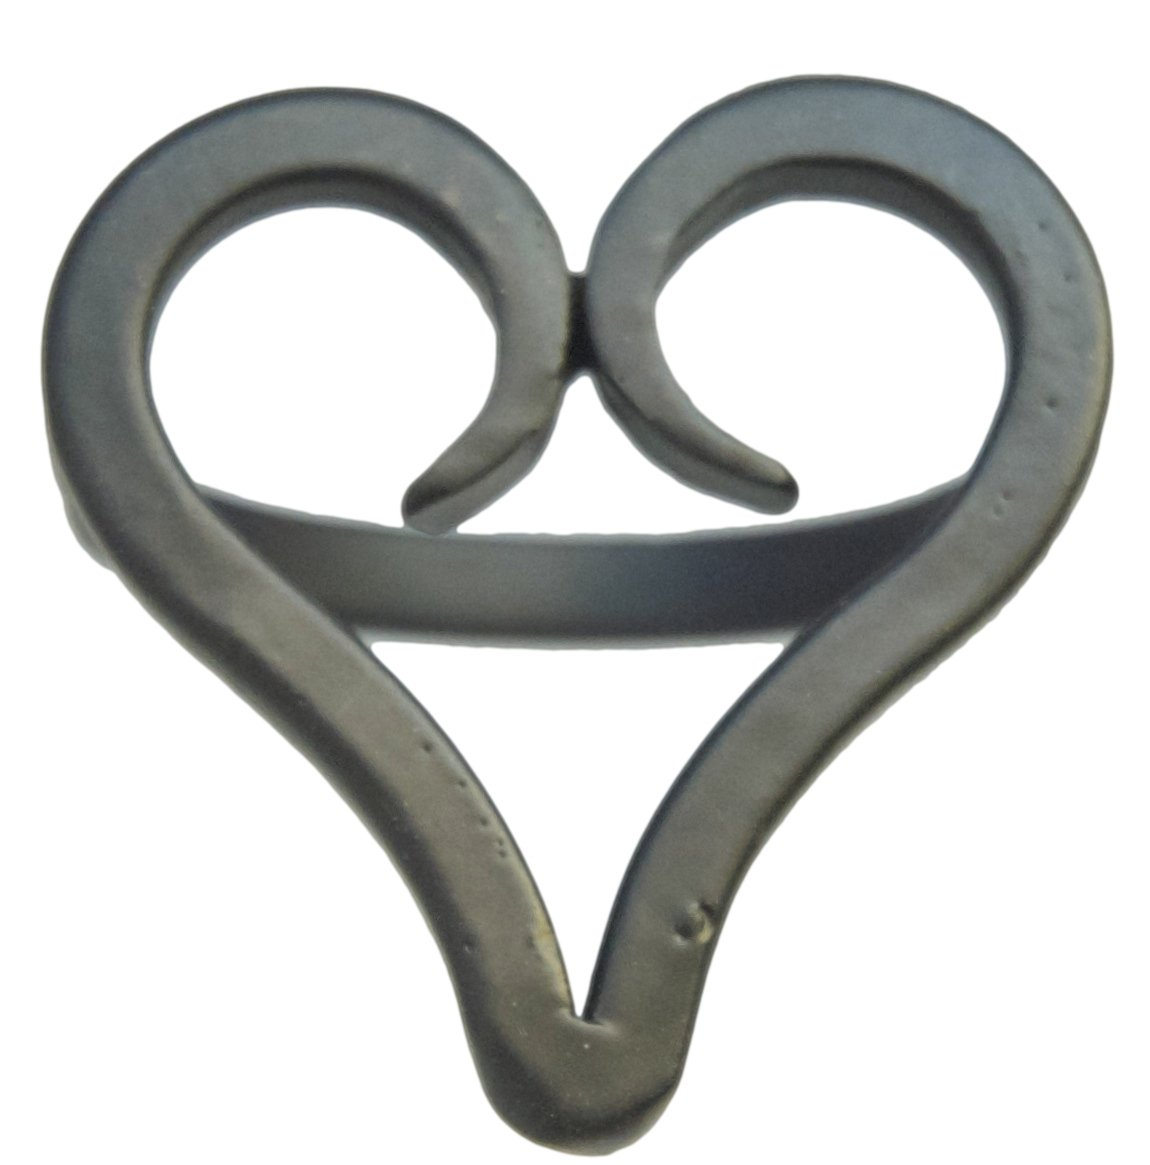 Forged Heart Napkin Rings, Set of 4 Park Designs 962-75